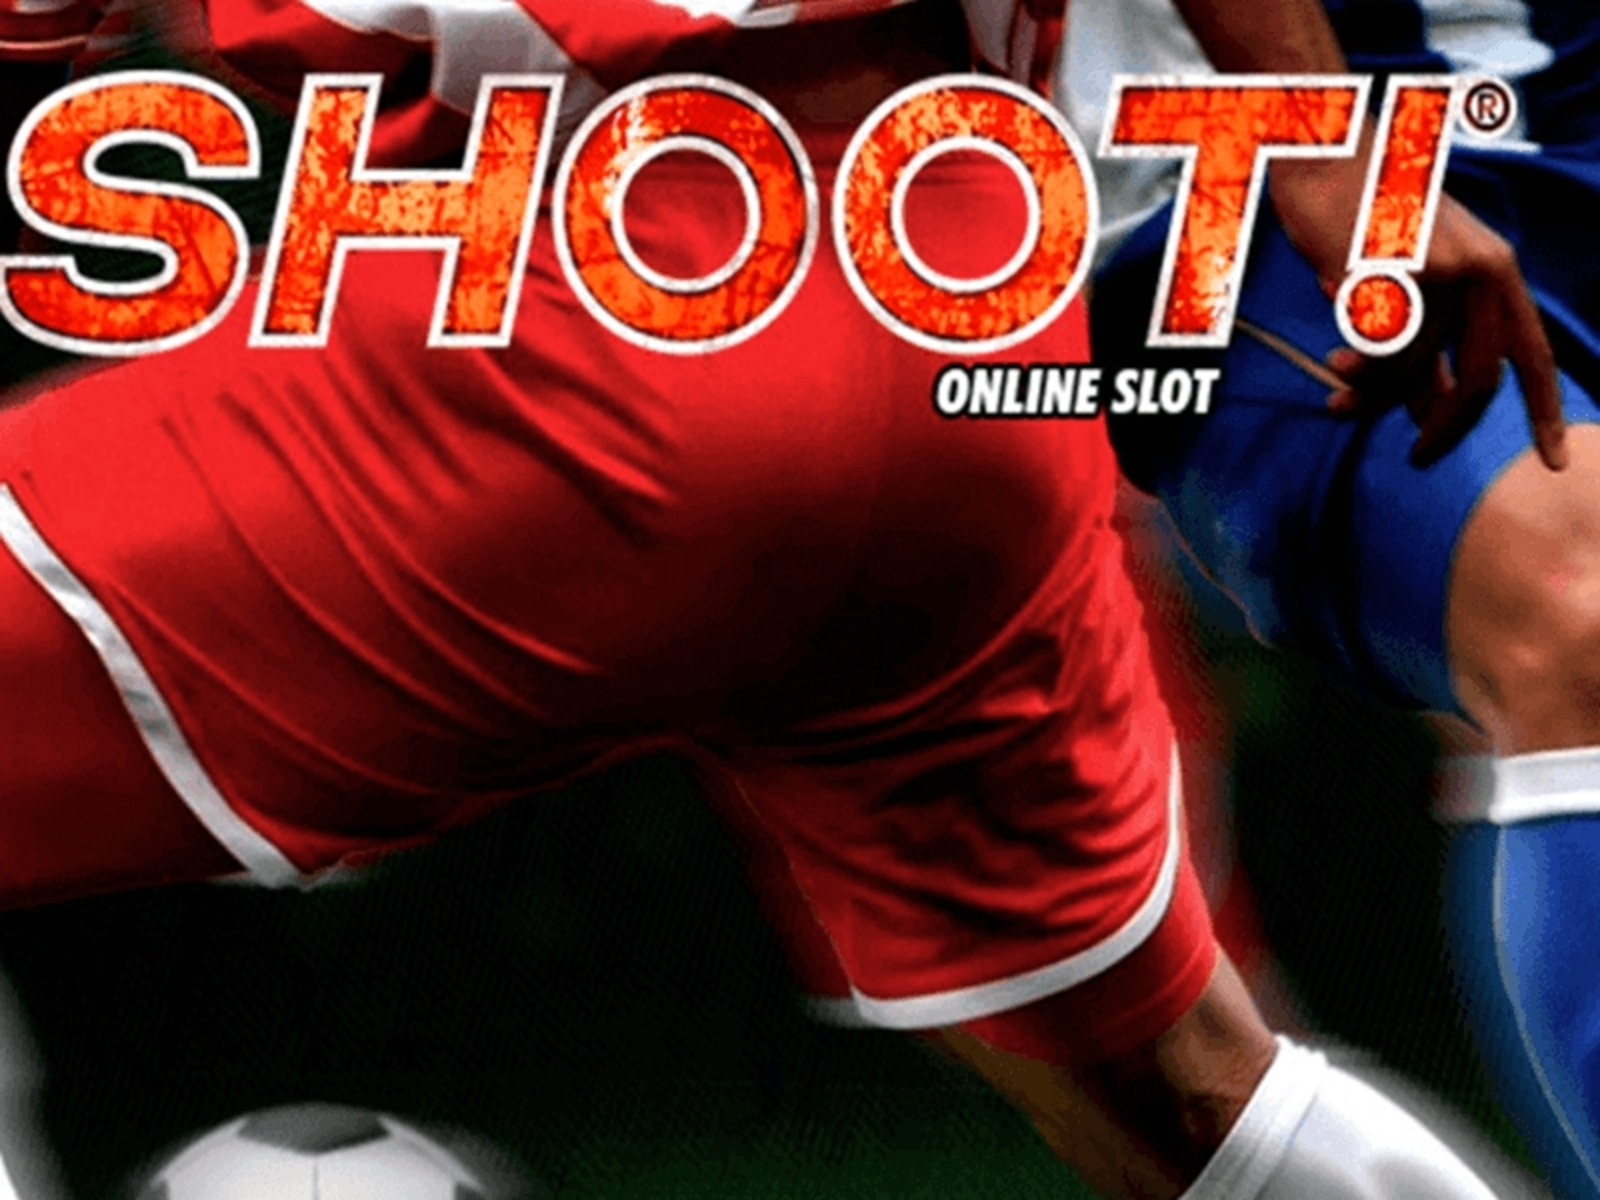 Se Shoot! Online Slot Demo Game, Microgaming